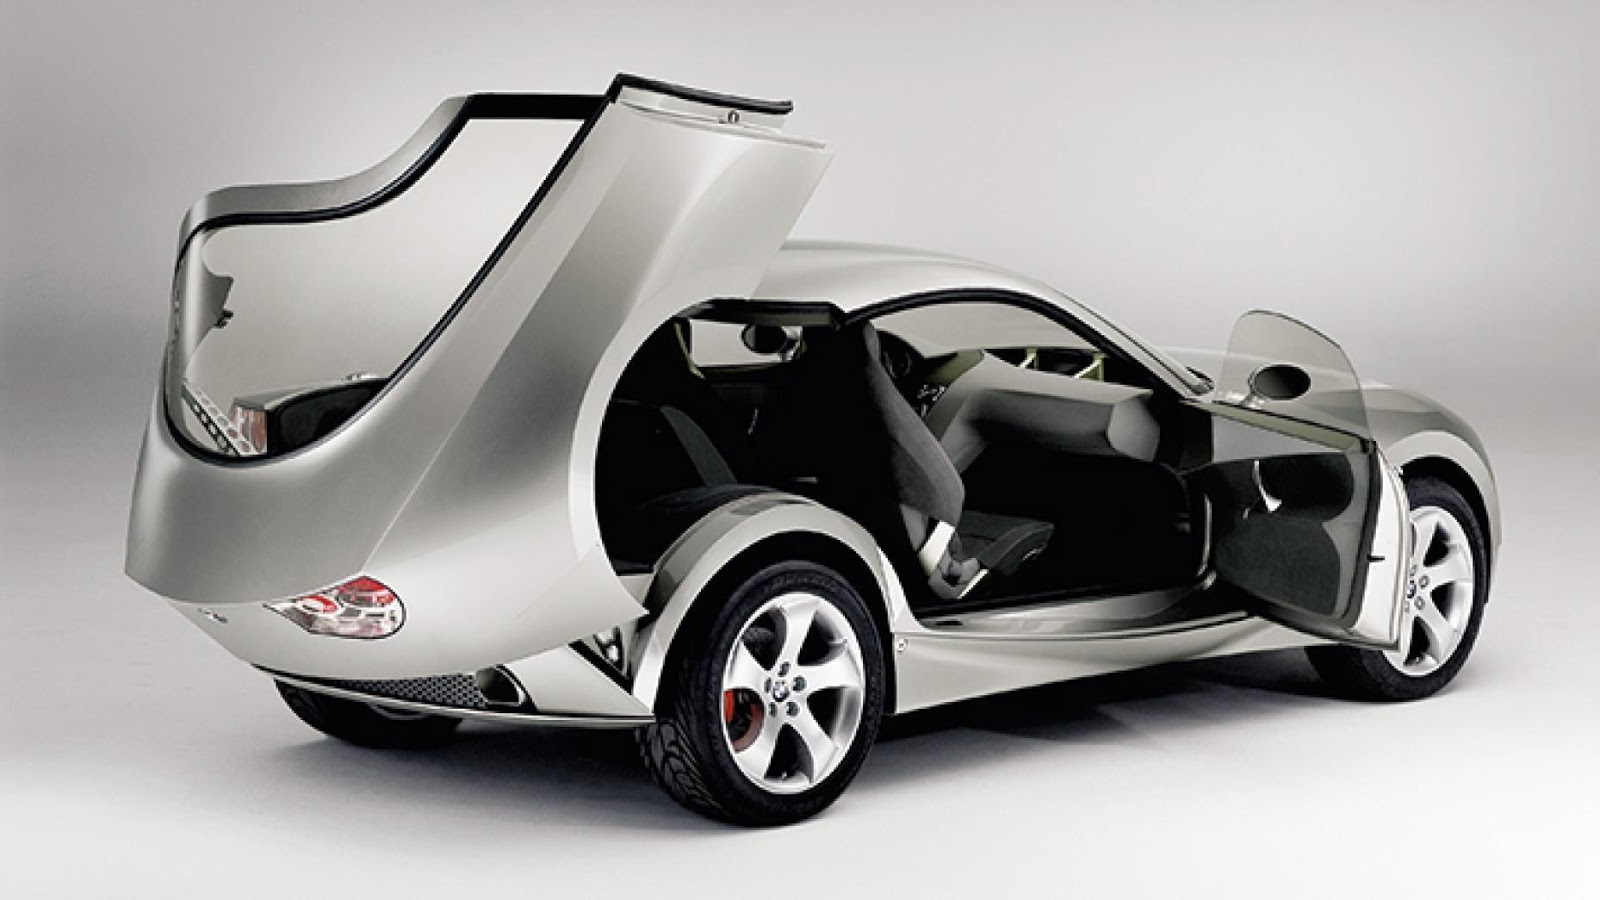 2001: BMW X Coupe concept